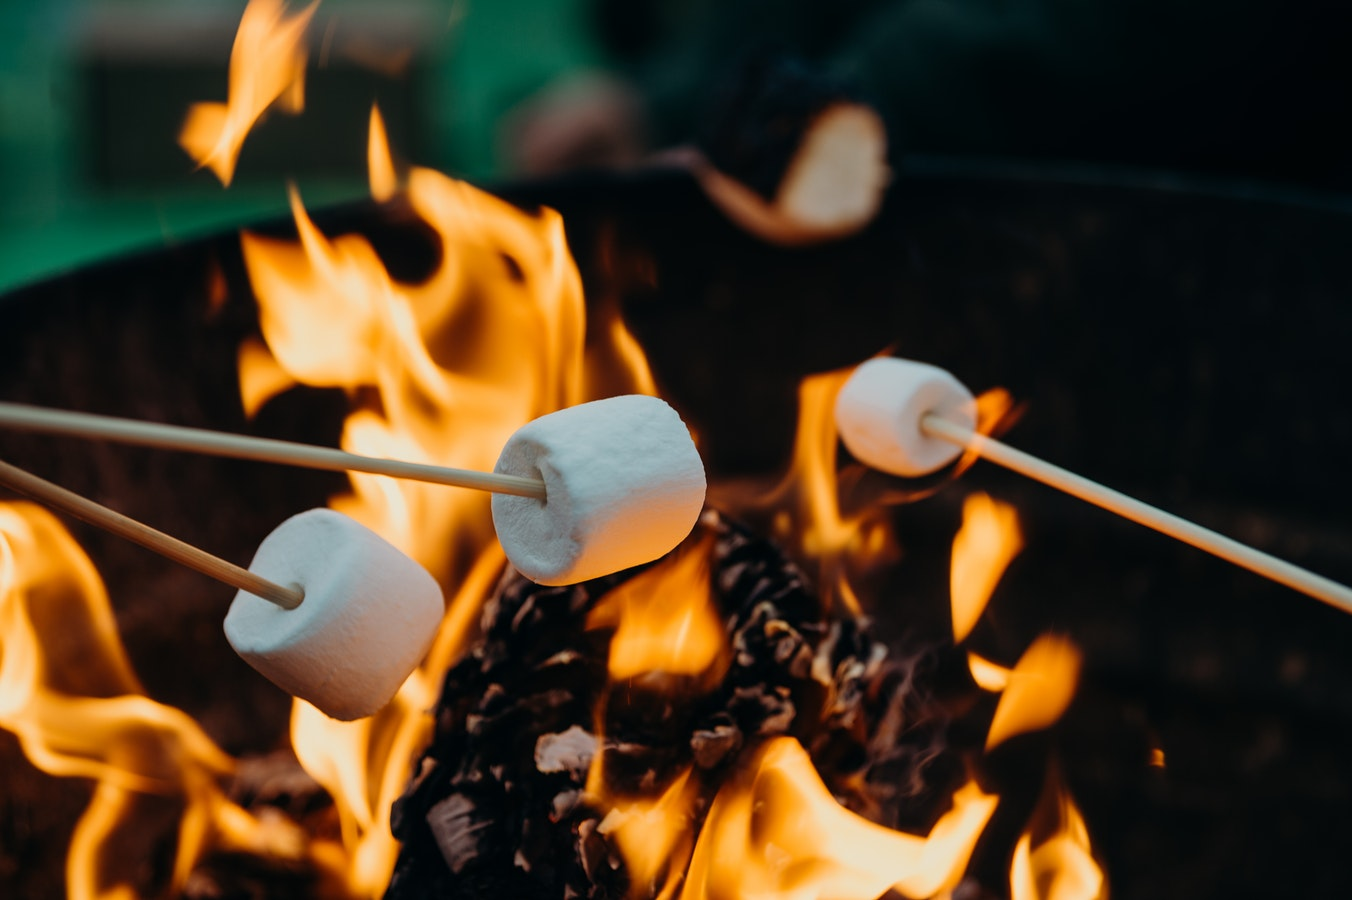 Roasting marshmallows over bonfire